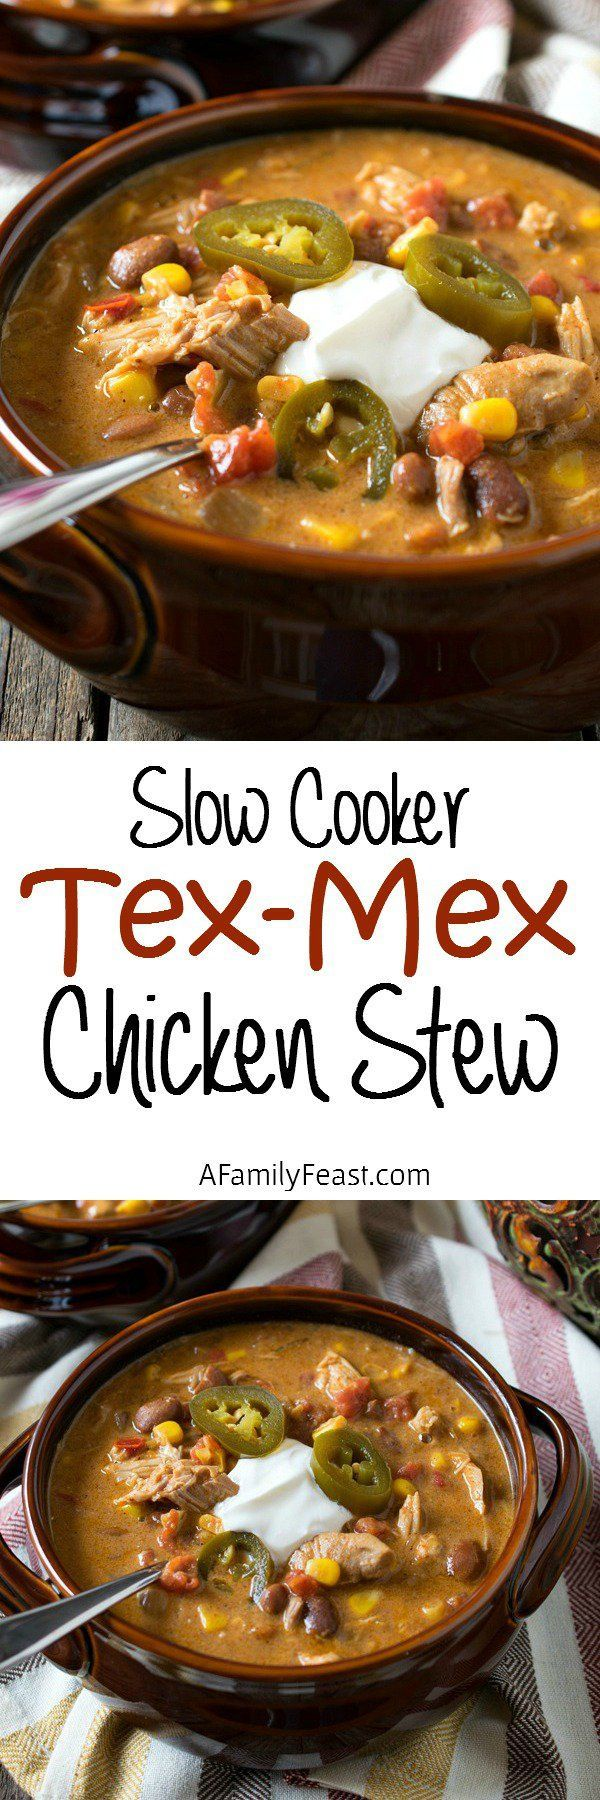 Slow Cooker Tex-Mex Chicken Stew - So easy to prepare and so delicious ...